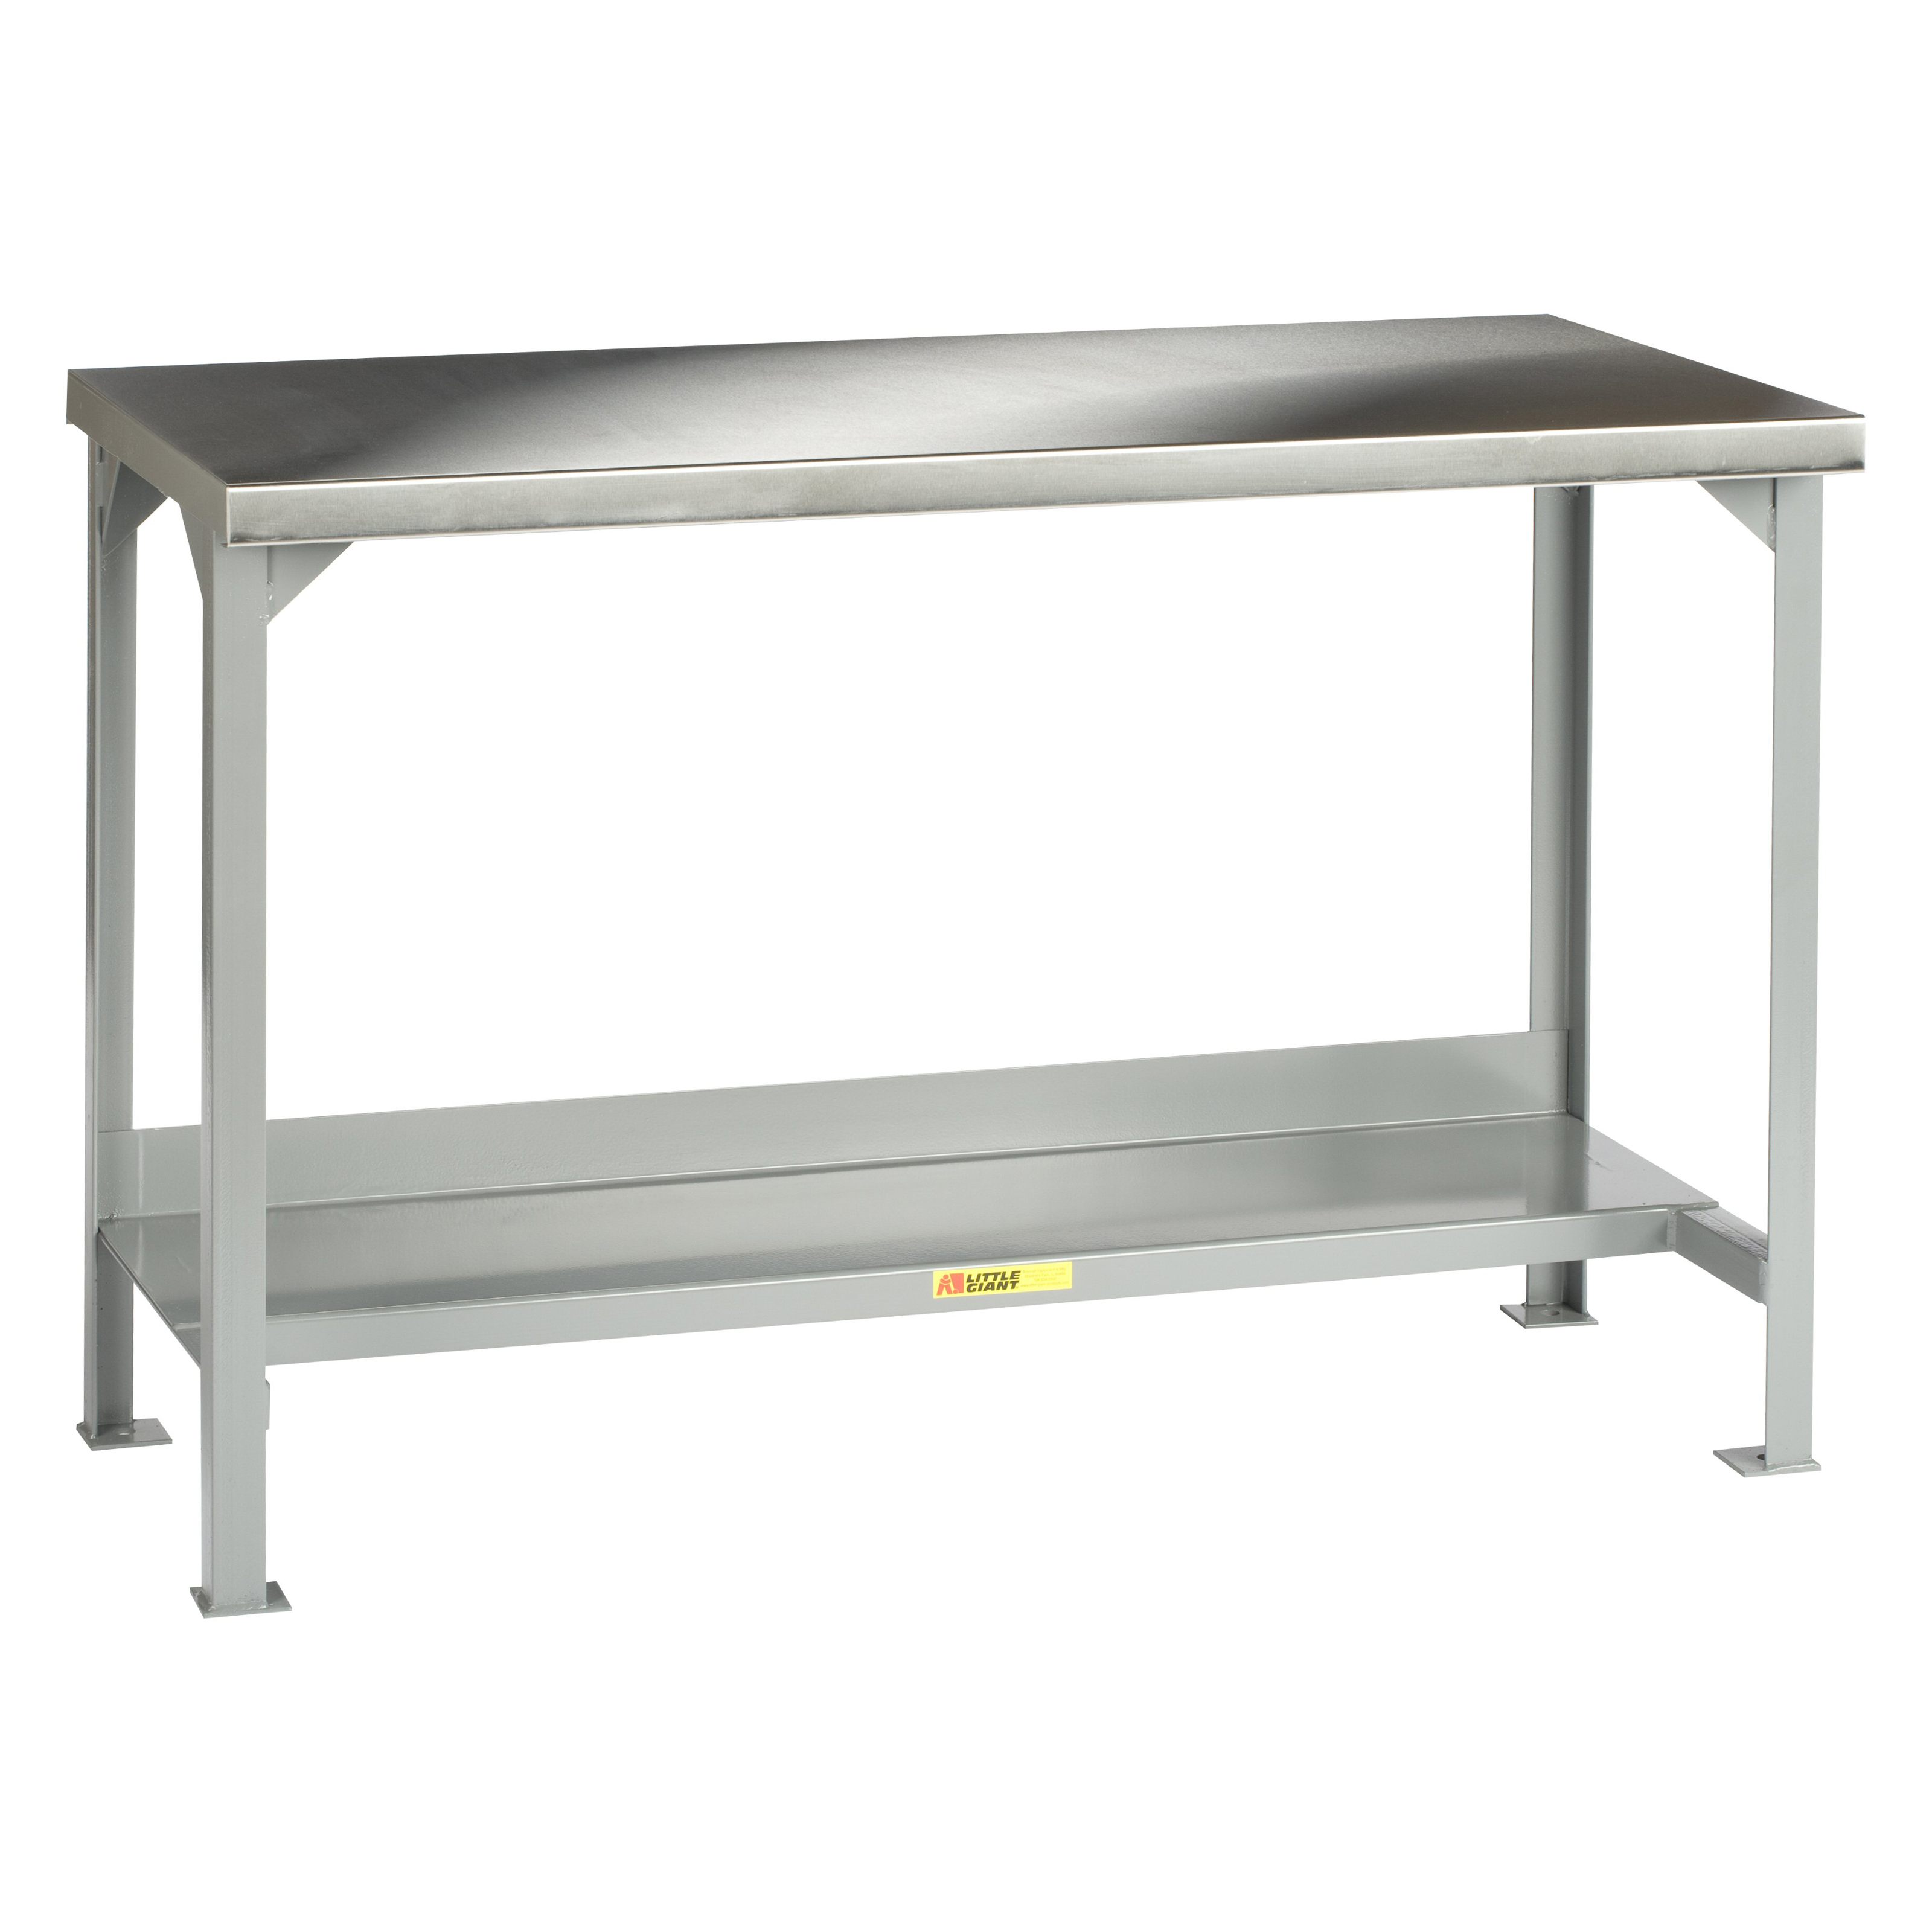 little giant welded steel workbench with stainless steel top workbenches at hayneedle. Black Bedroom Furniture Sets. Home Design Ideas